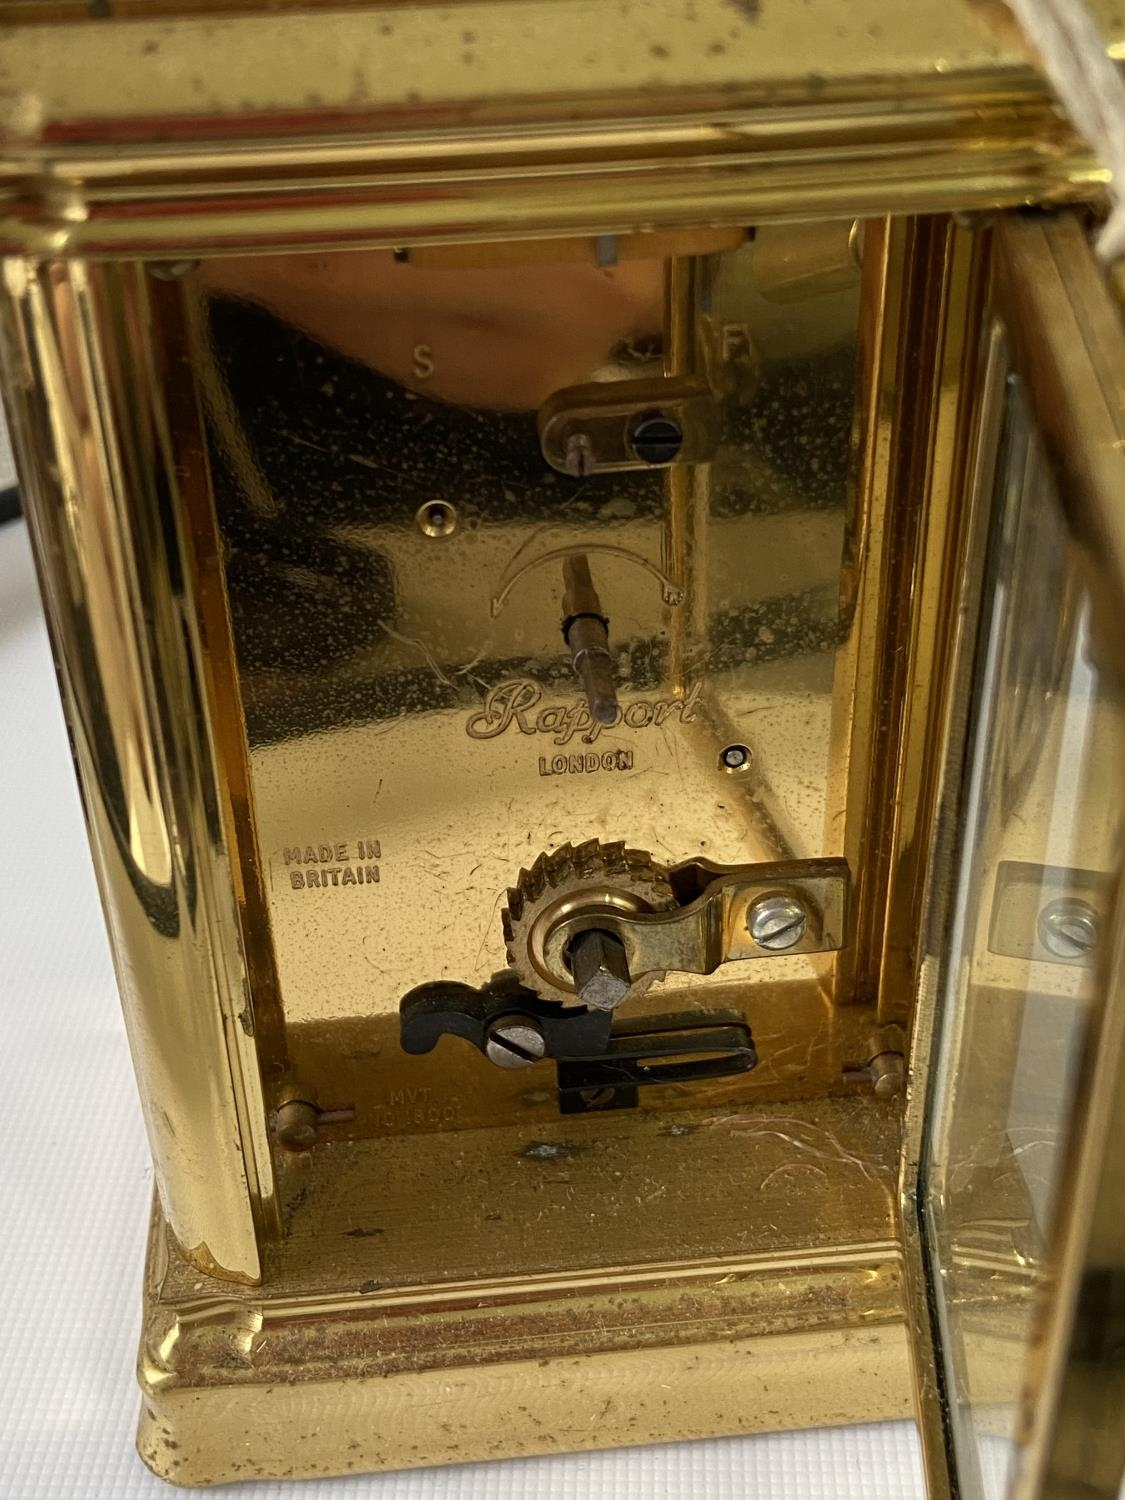 Antique heavy brass carriage clock [Rapport London] [MVT No 1800] in a working condition and with - Image 7 of 12